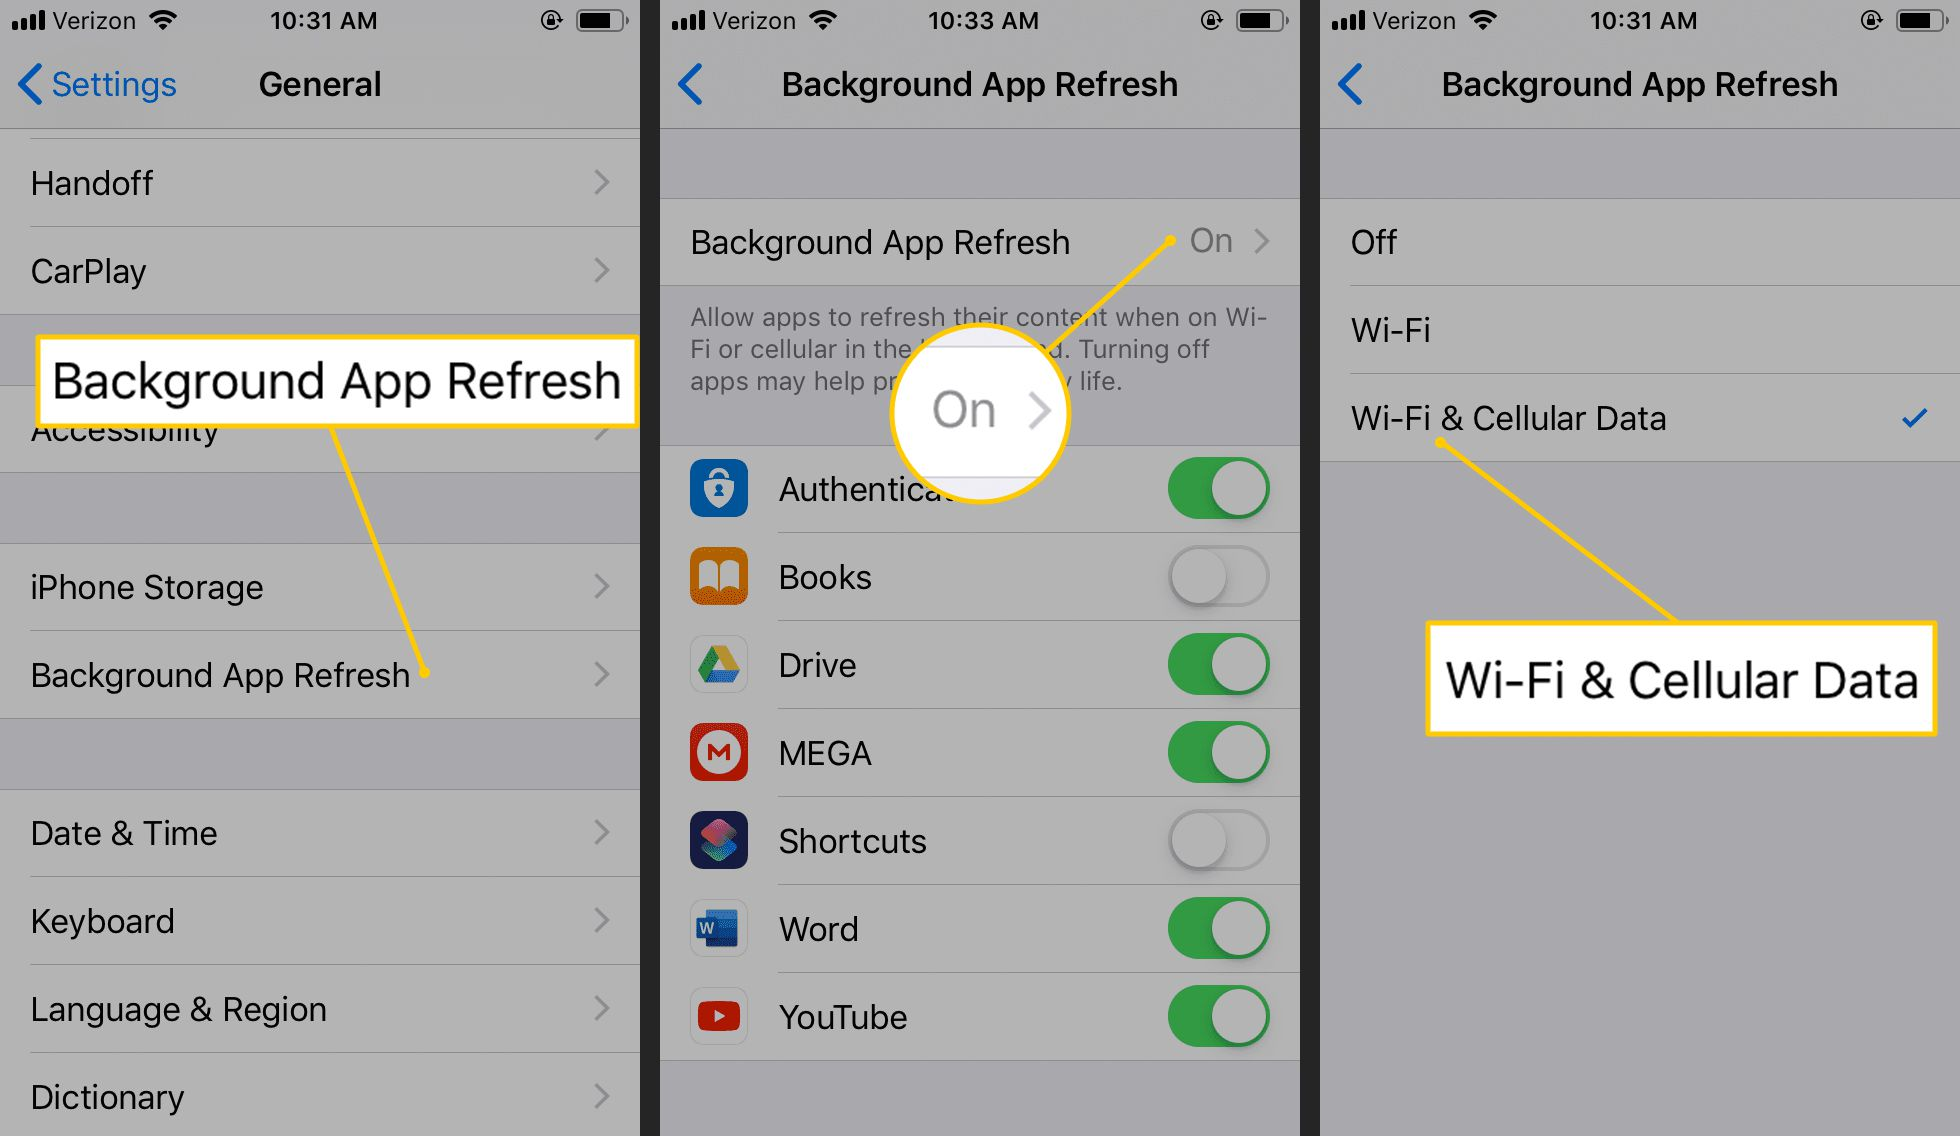 Background App Refresh, On button, Wi-Fi & Cellular Data in iOS settings